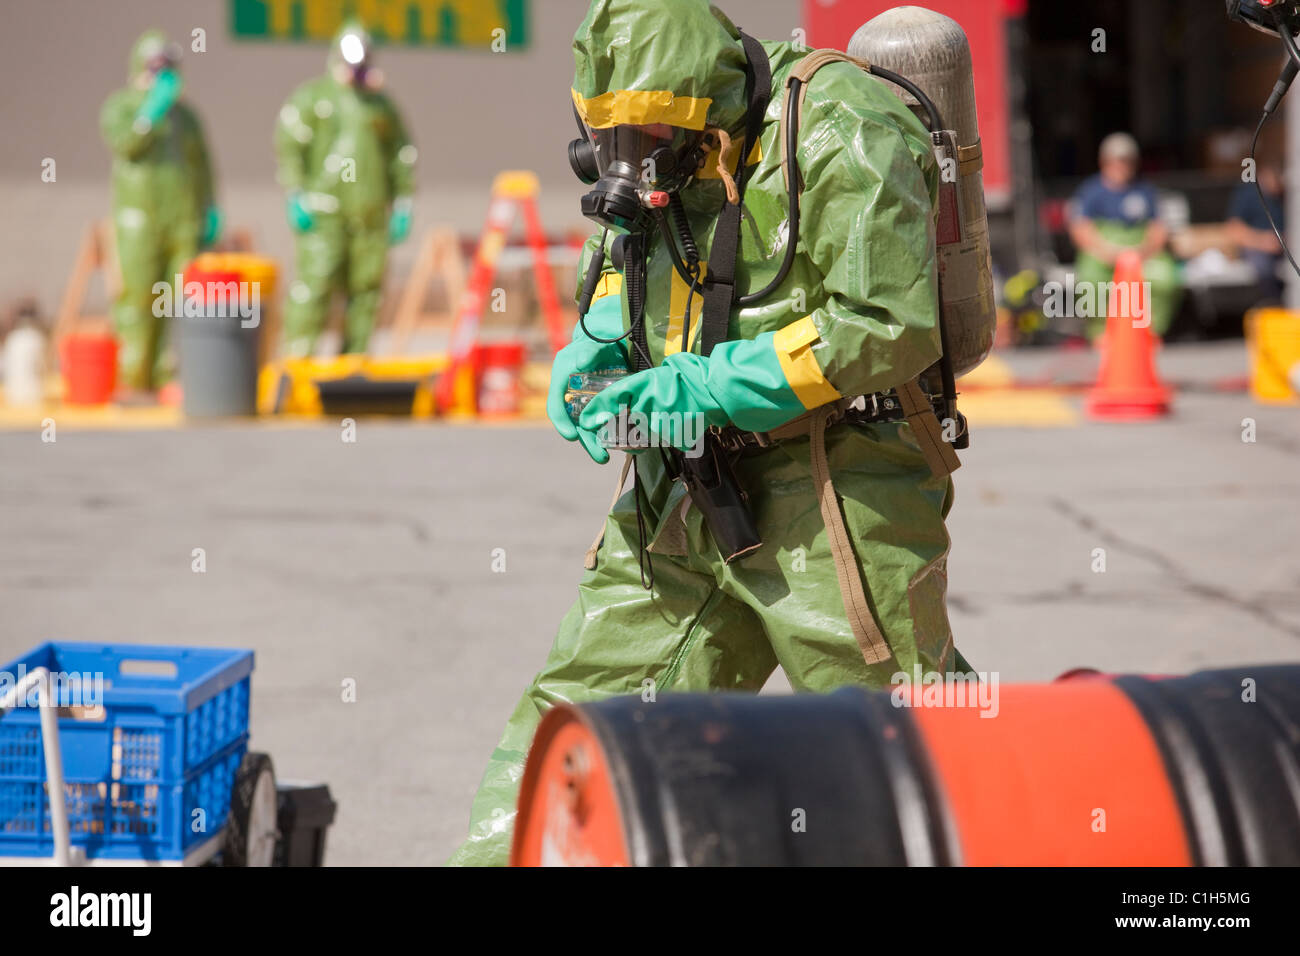 Hazmat Working